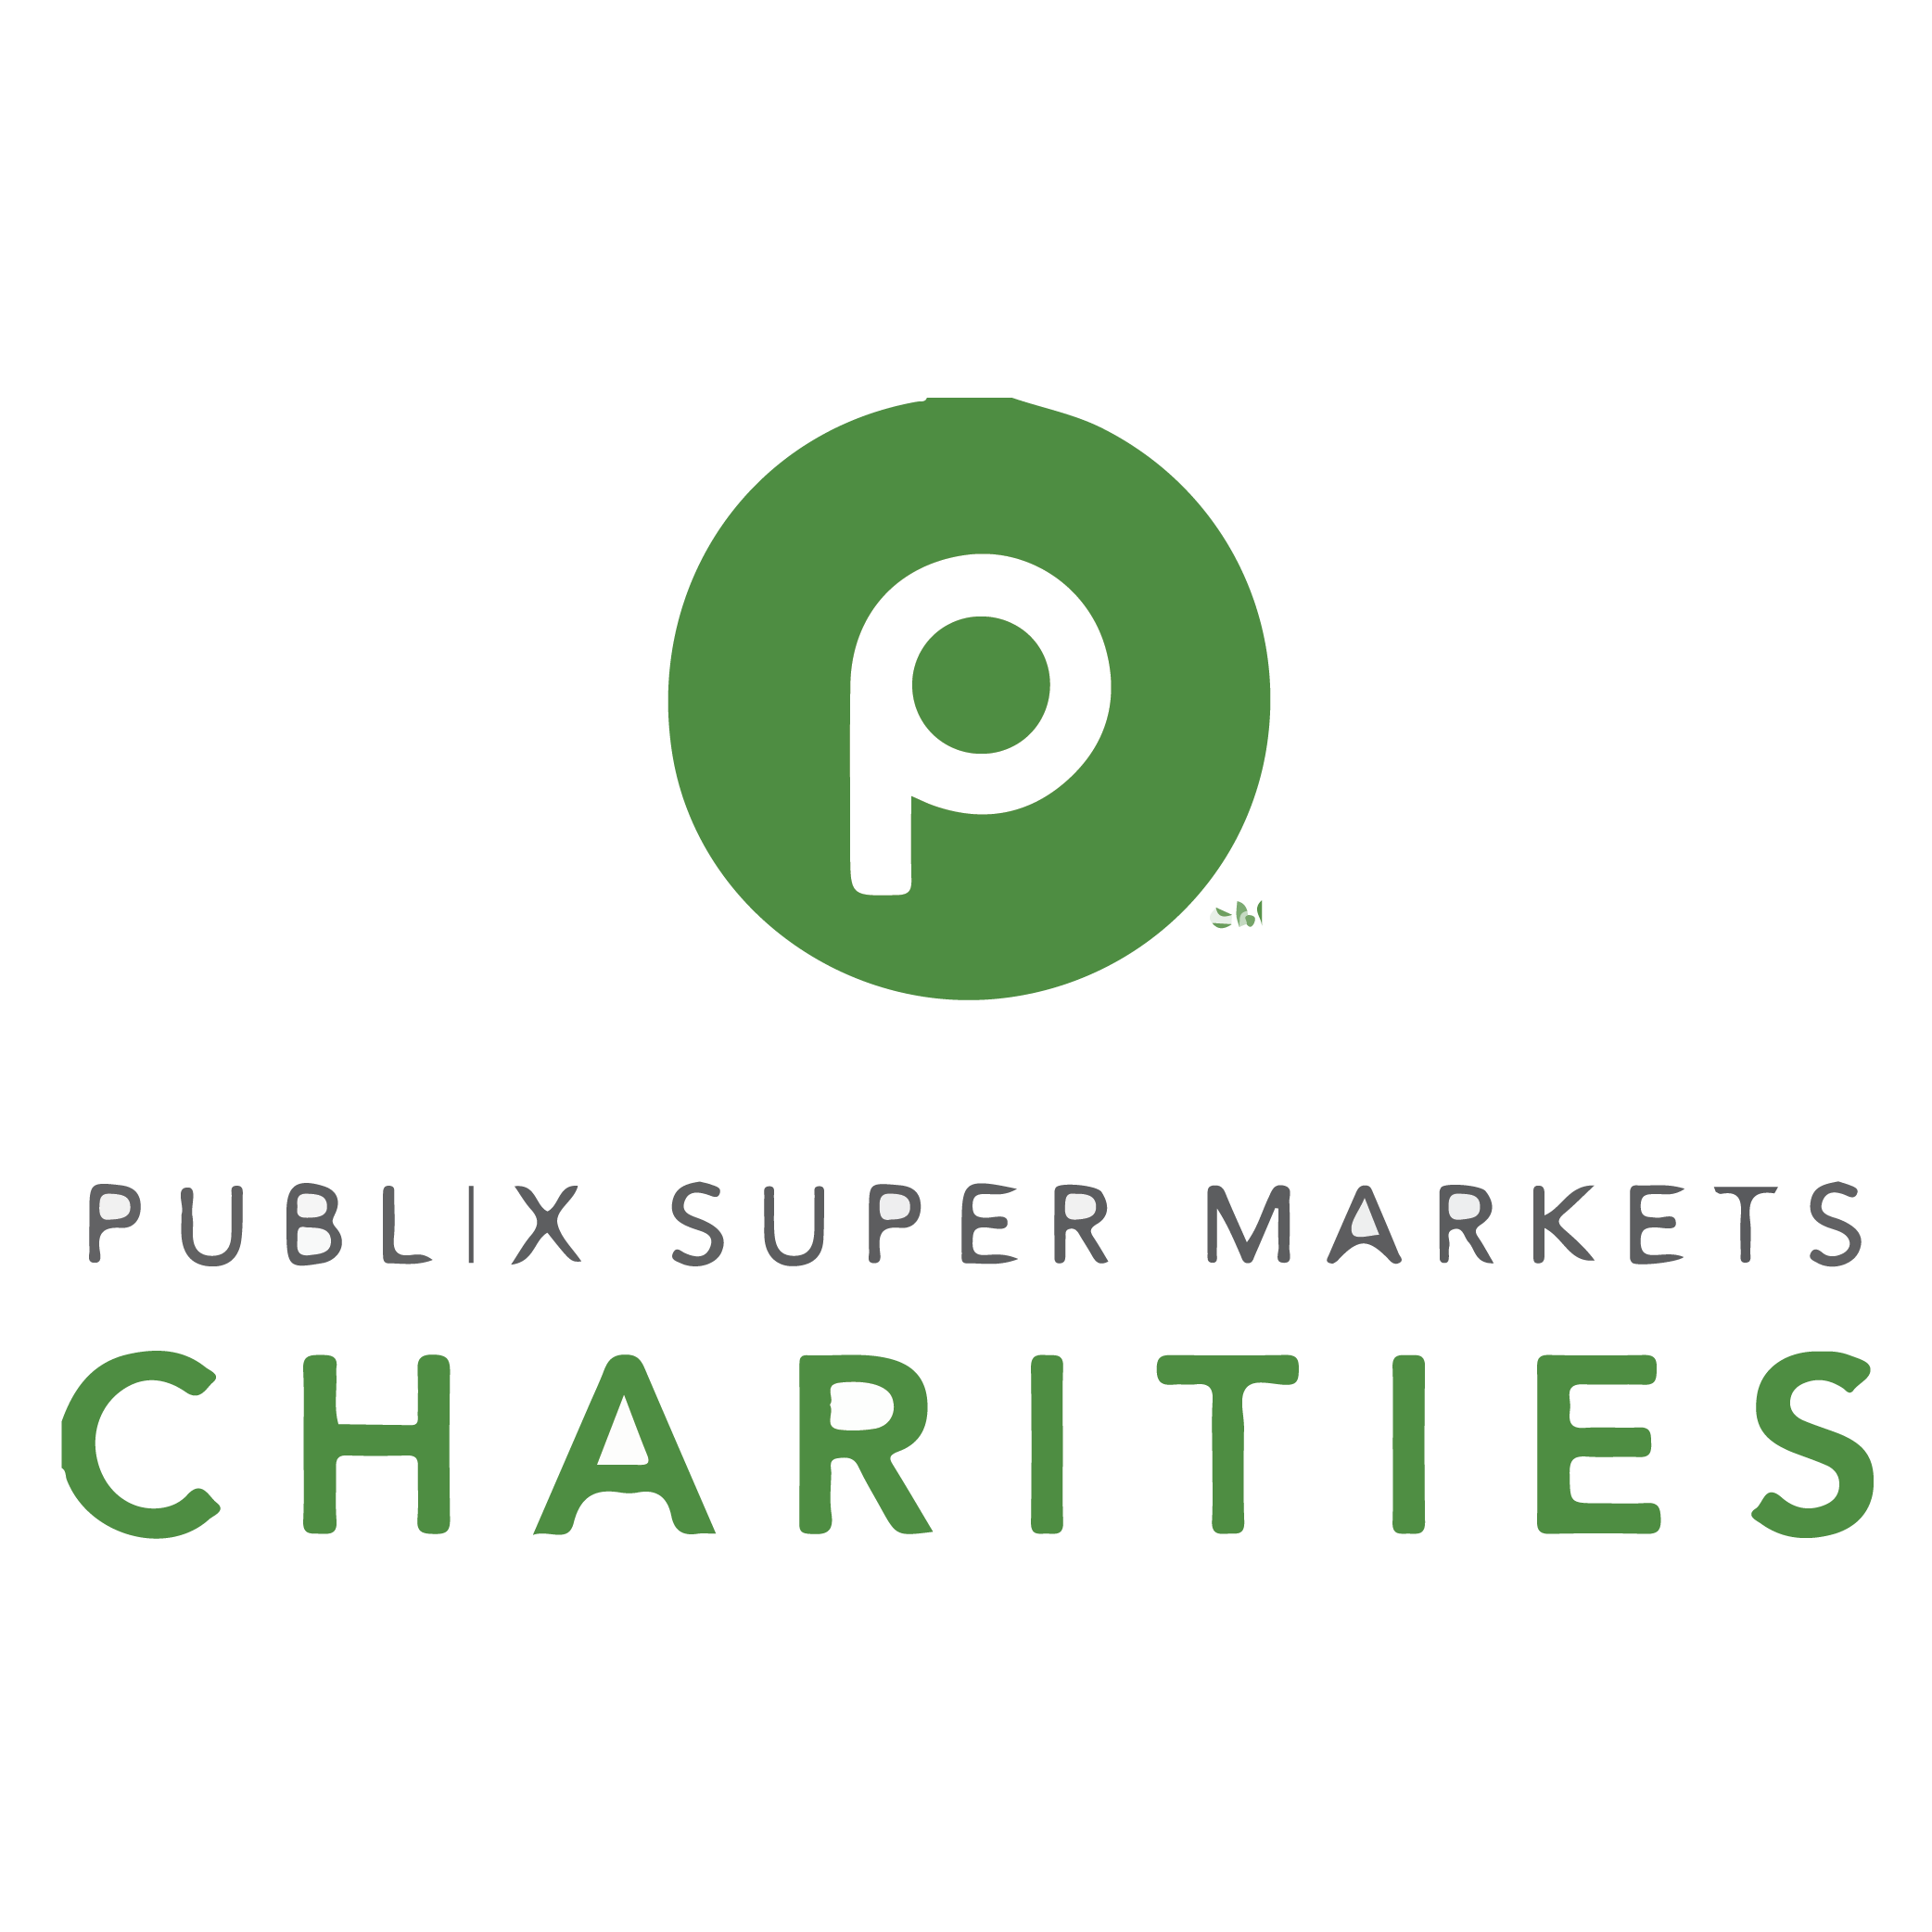 Publix-Supermarket-Charities_sized-01